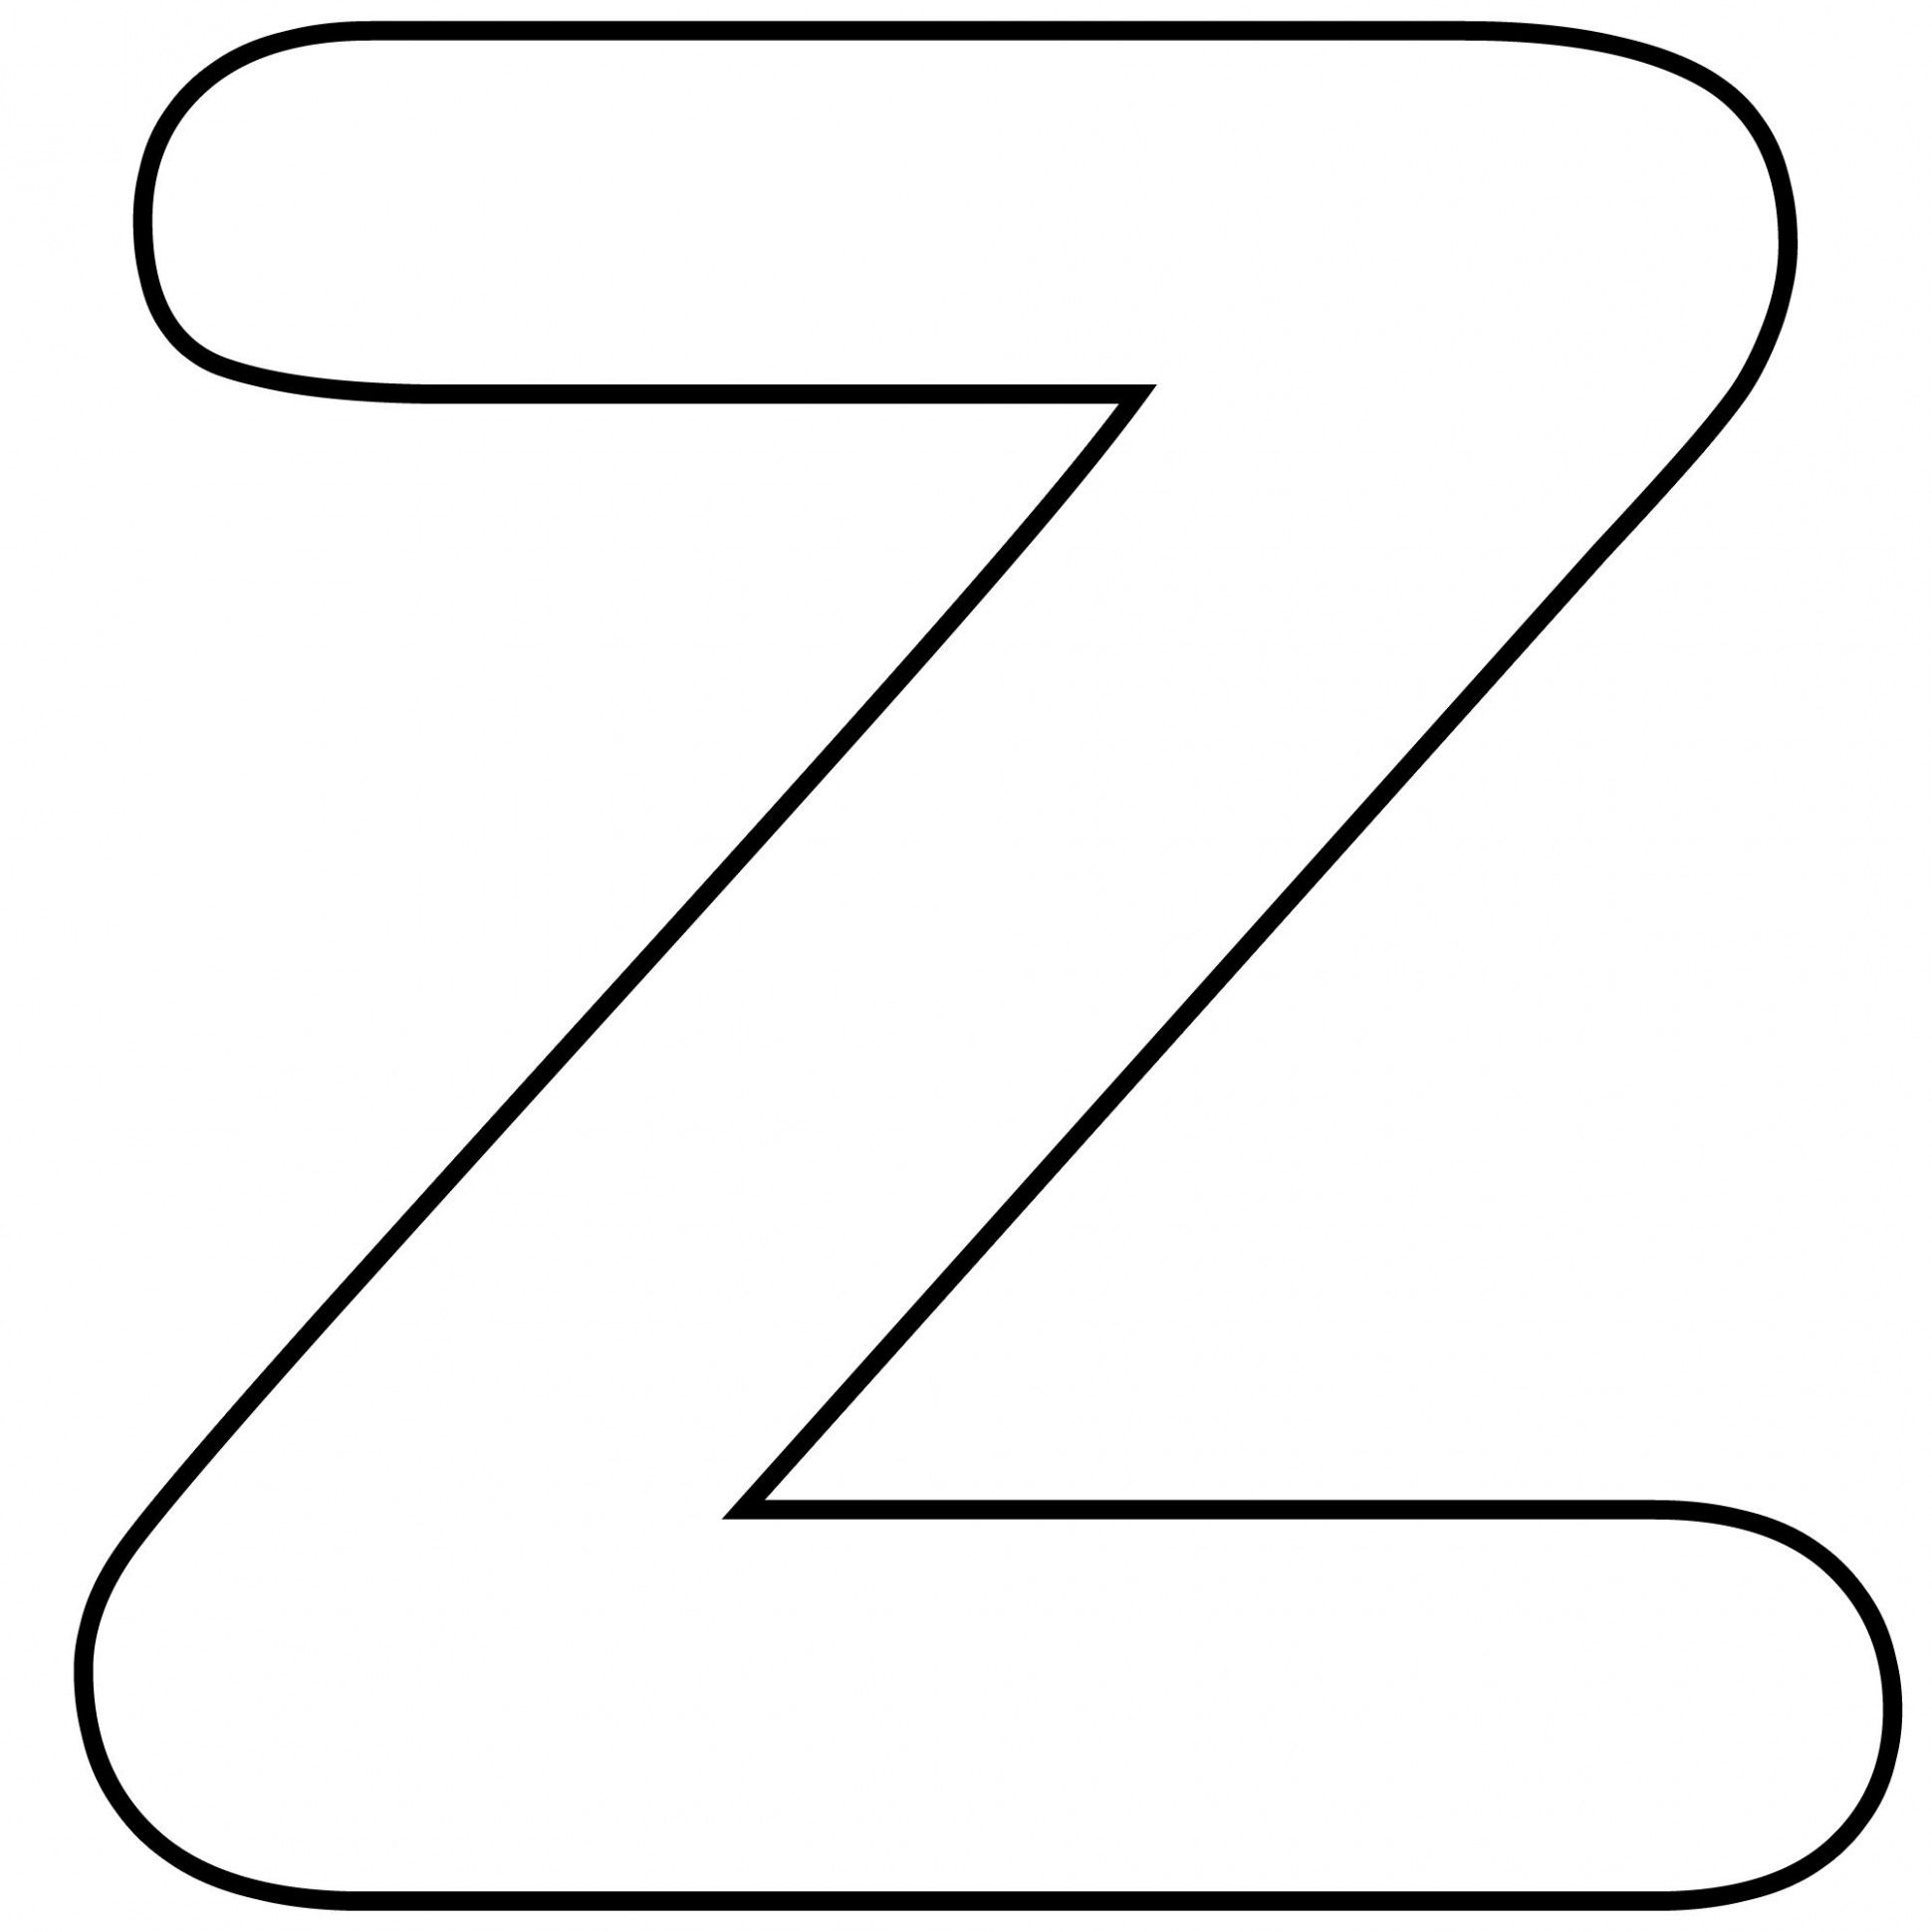 A Z Letter Template The Miracle Of A Z Letter Template